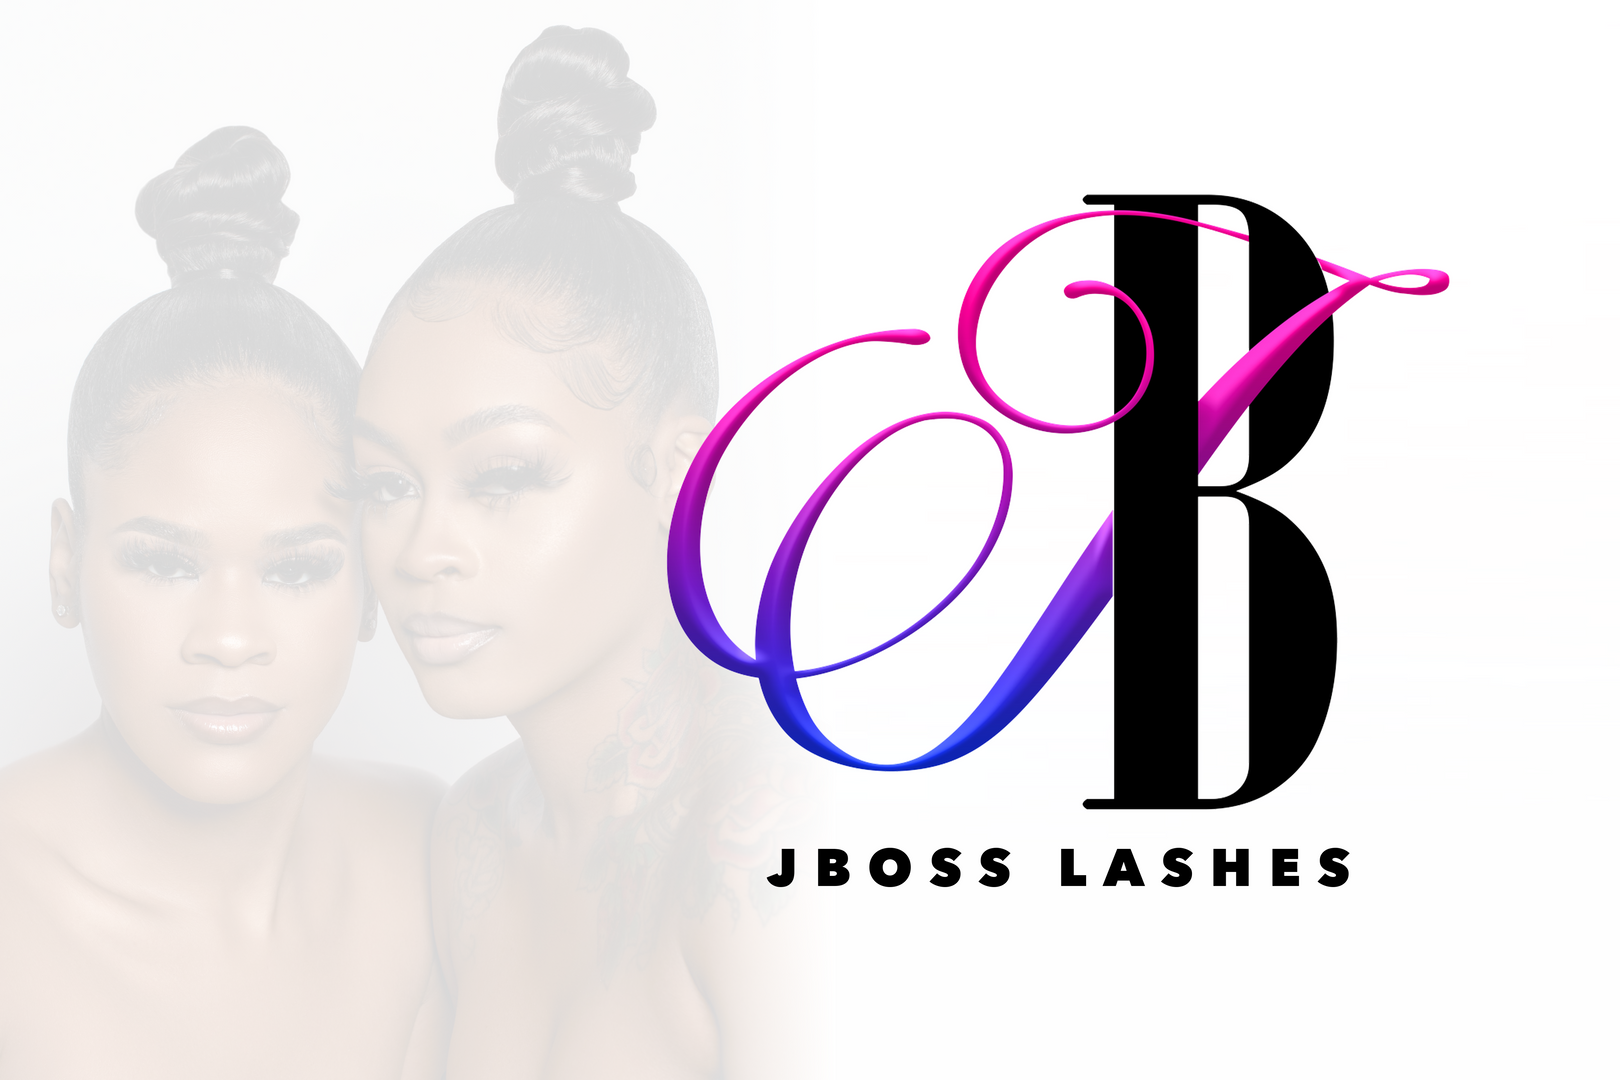 JBoss Lashes